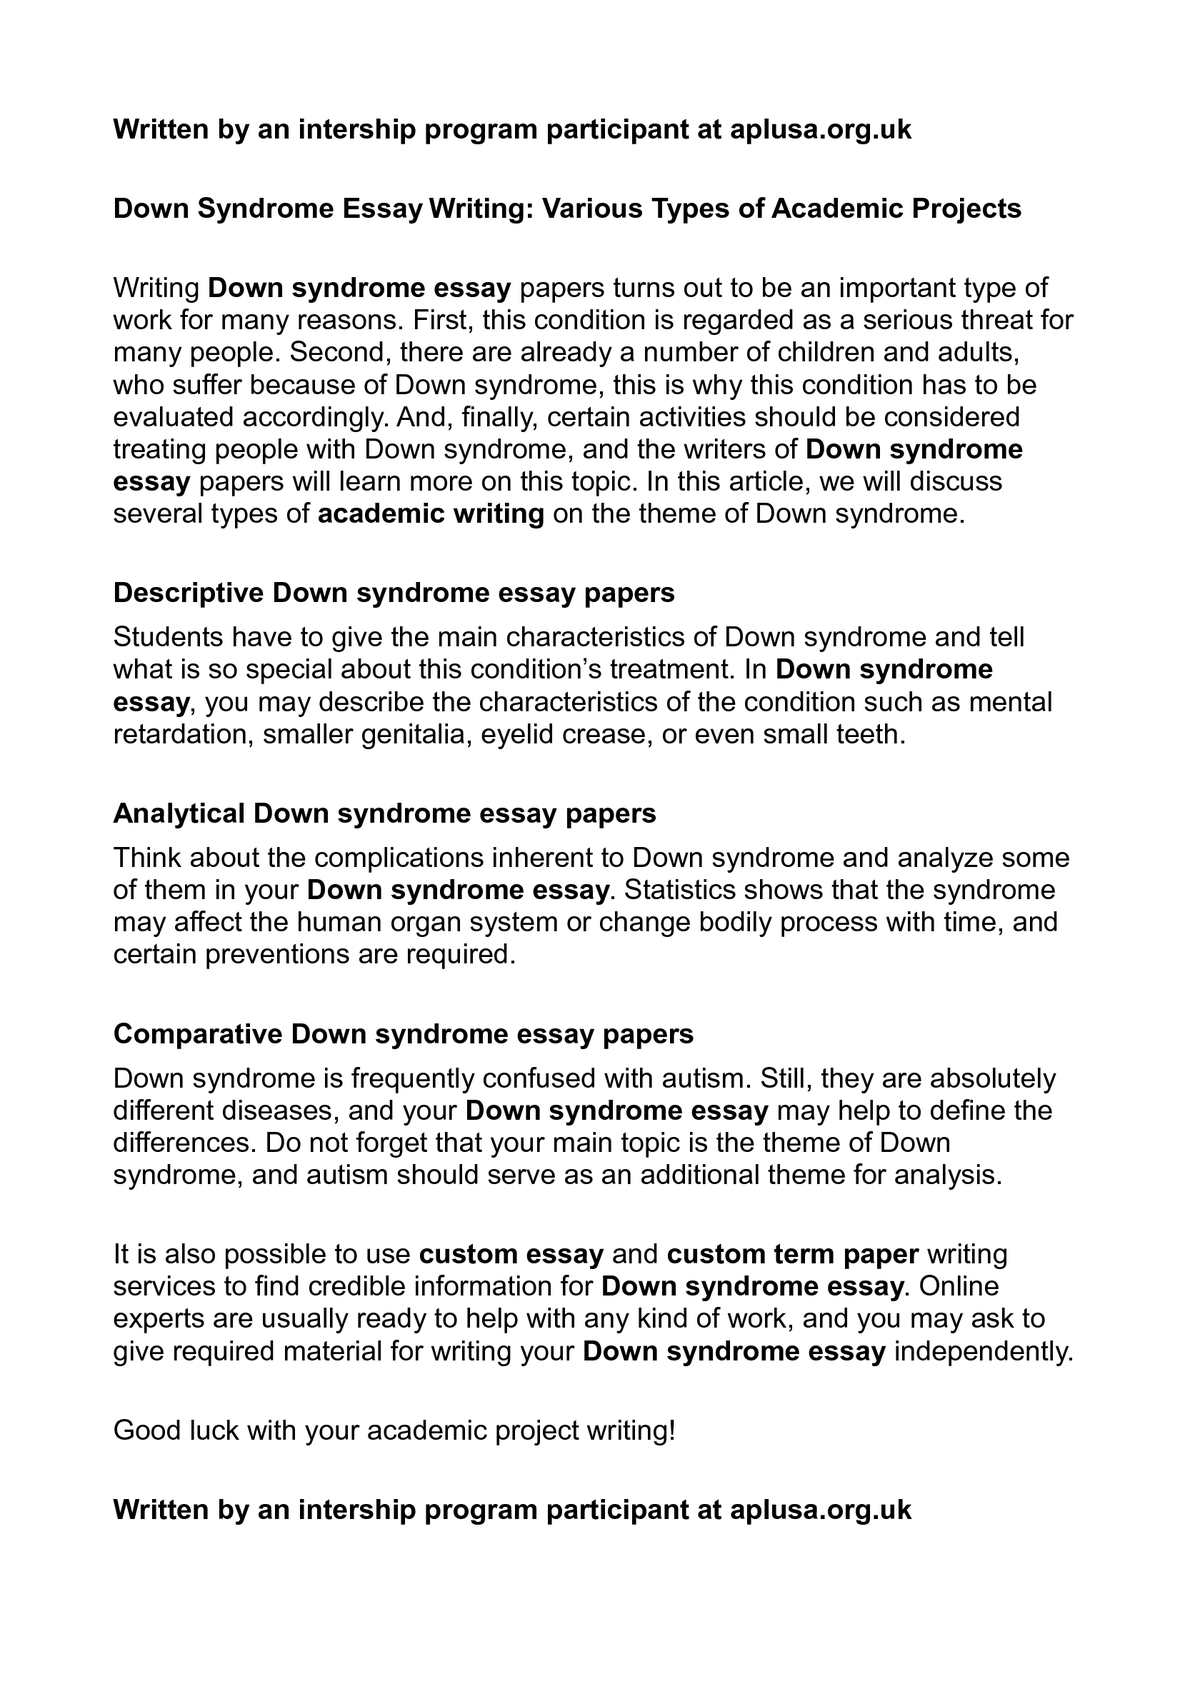 Calamo  Down Syndrome Essay Writing Various Types Of Academic  Calamo  Down Syndrome Essay Writing Various Types Of Academic Projects